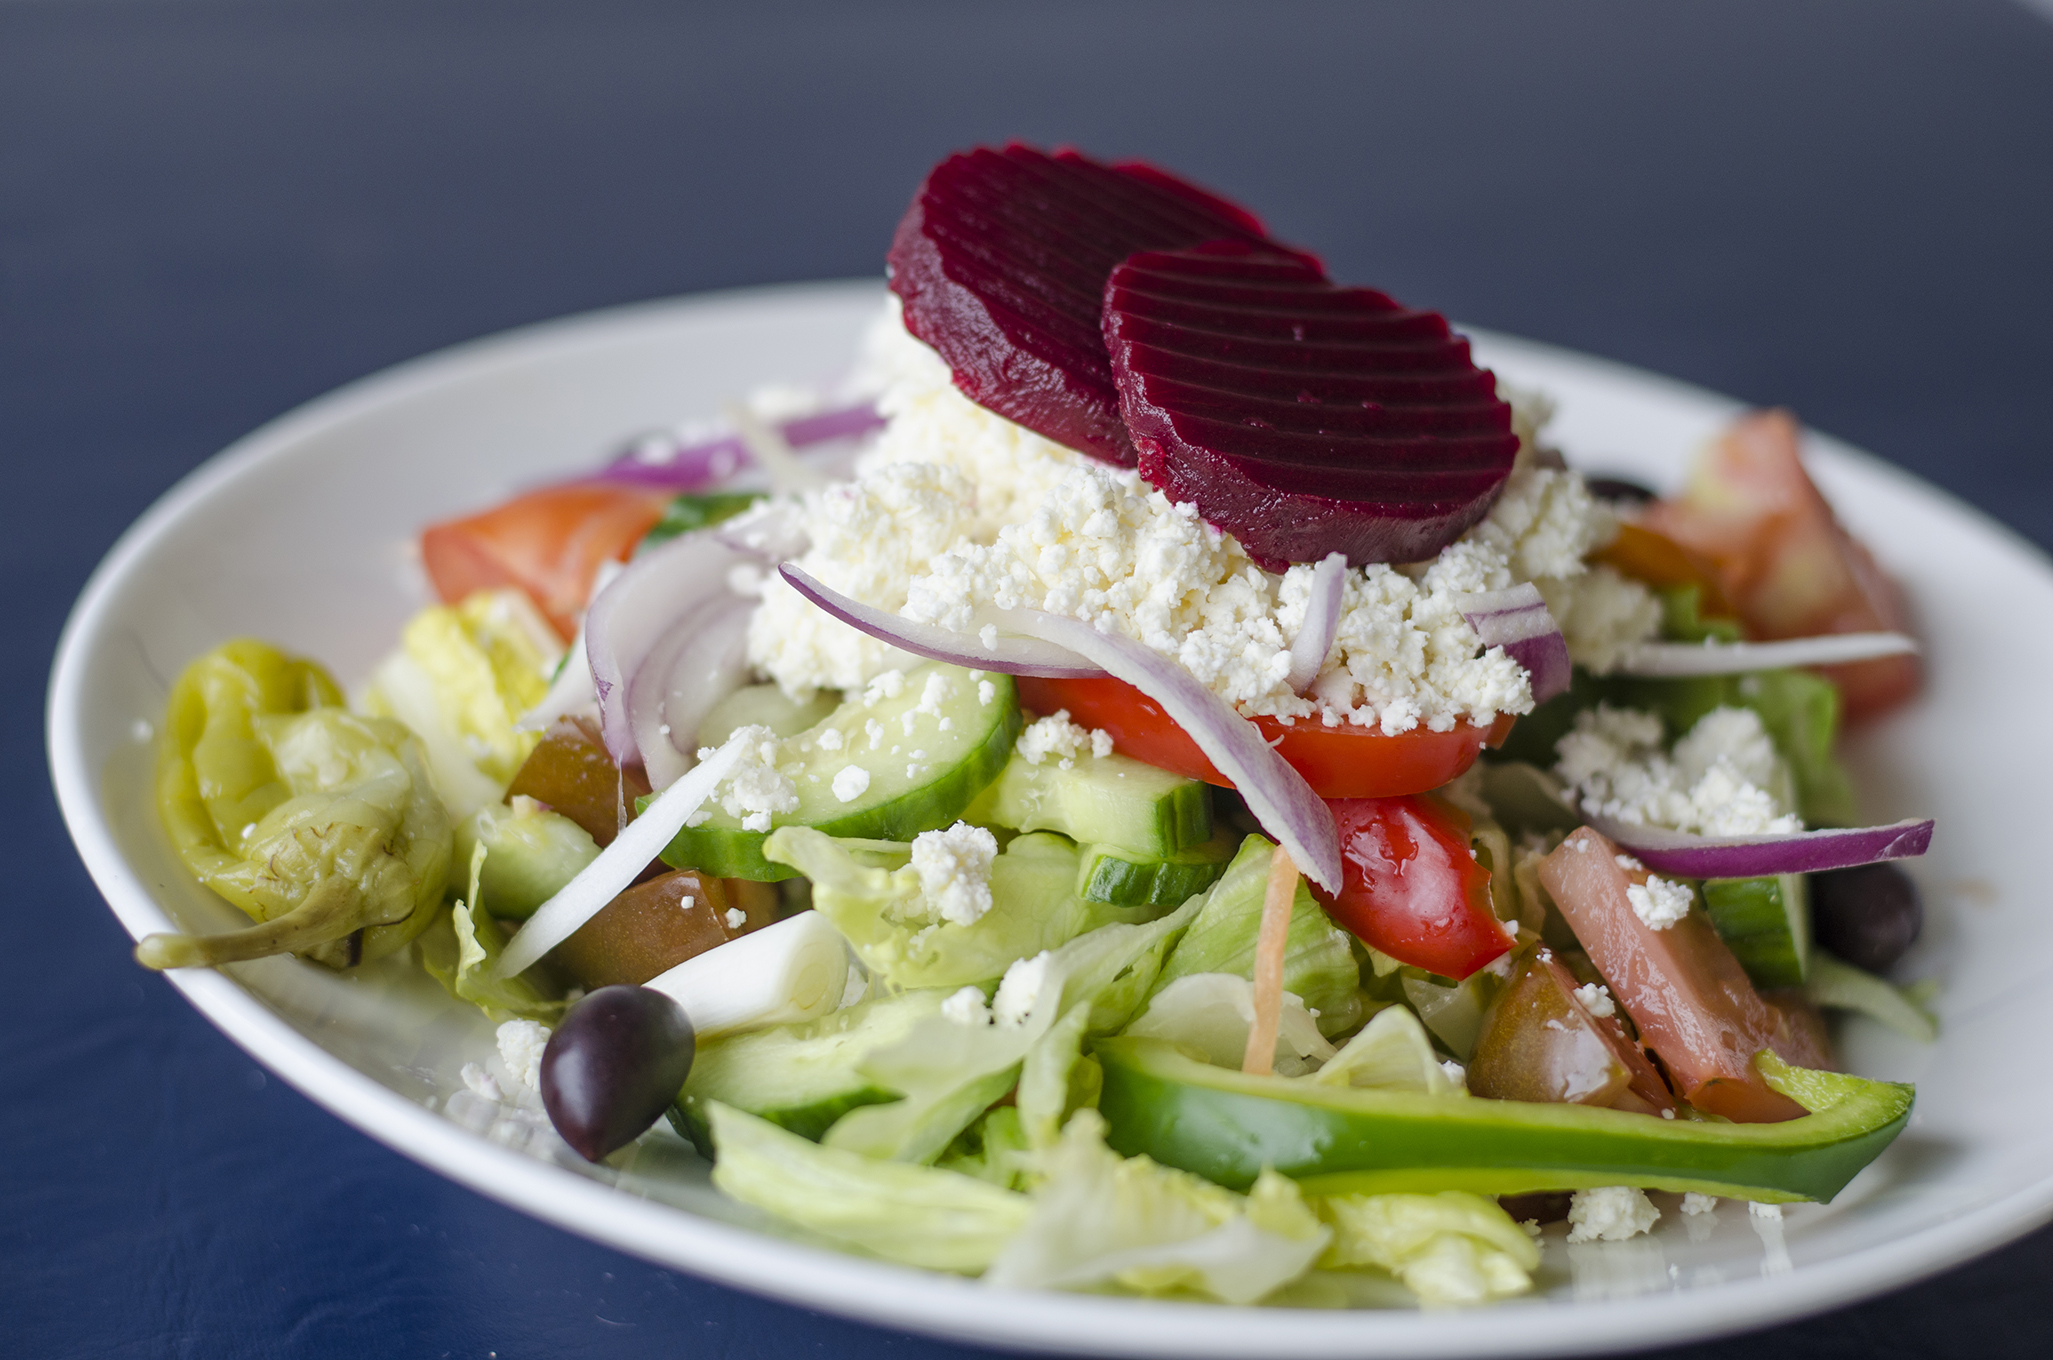 The Greek Salad at Etta's Greeklish Eatery in Windsor, Ontario.